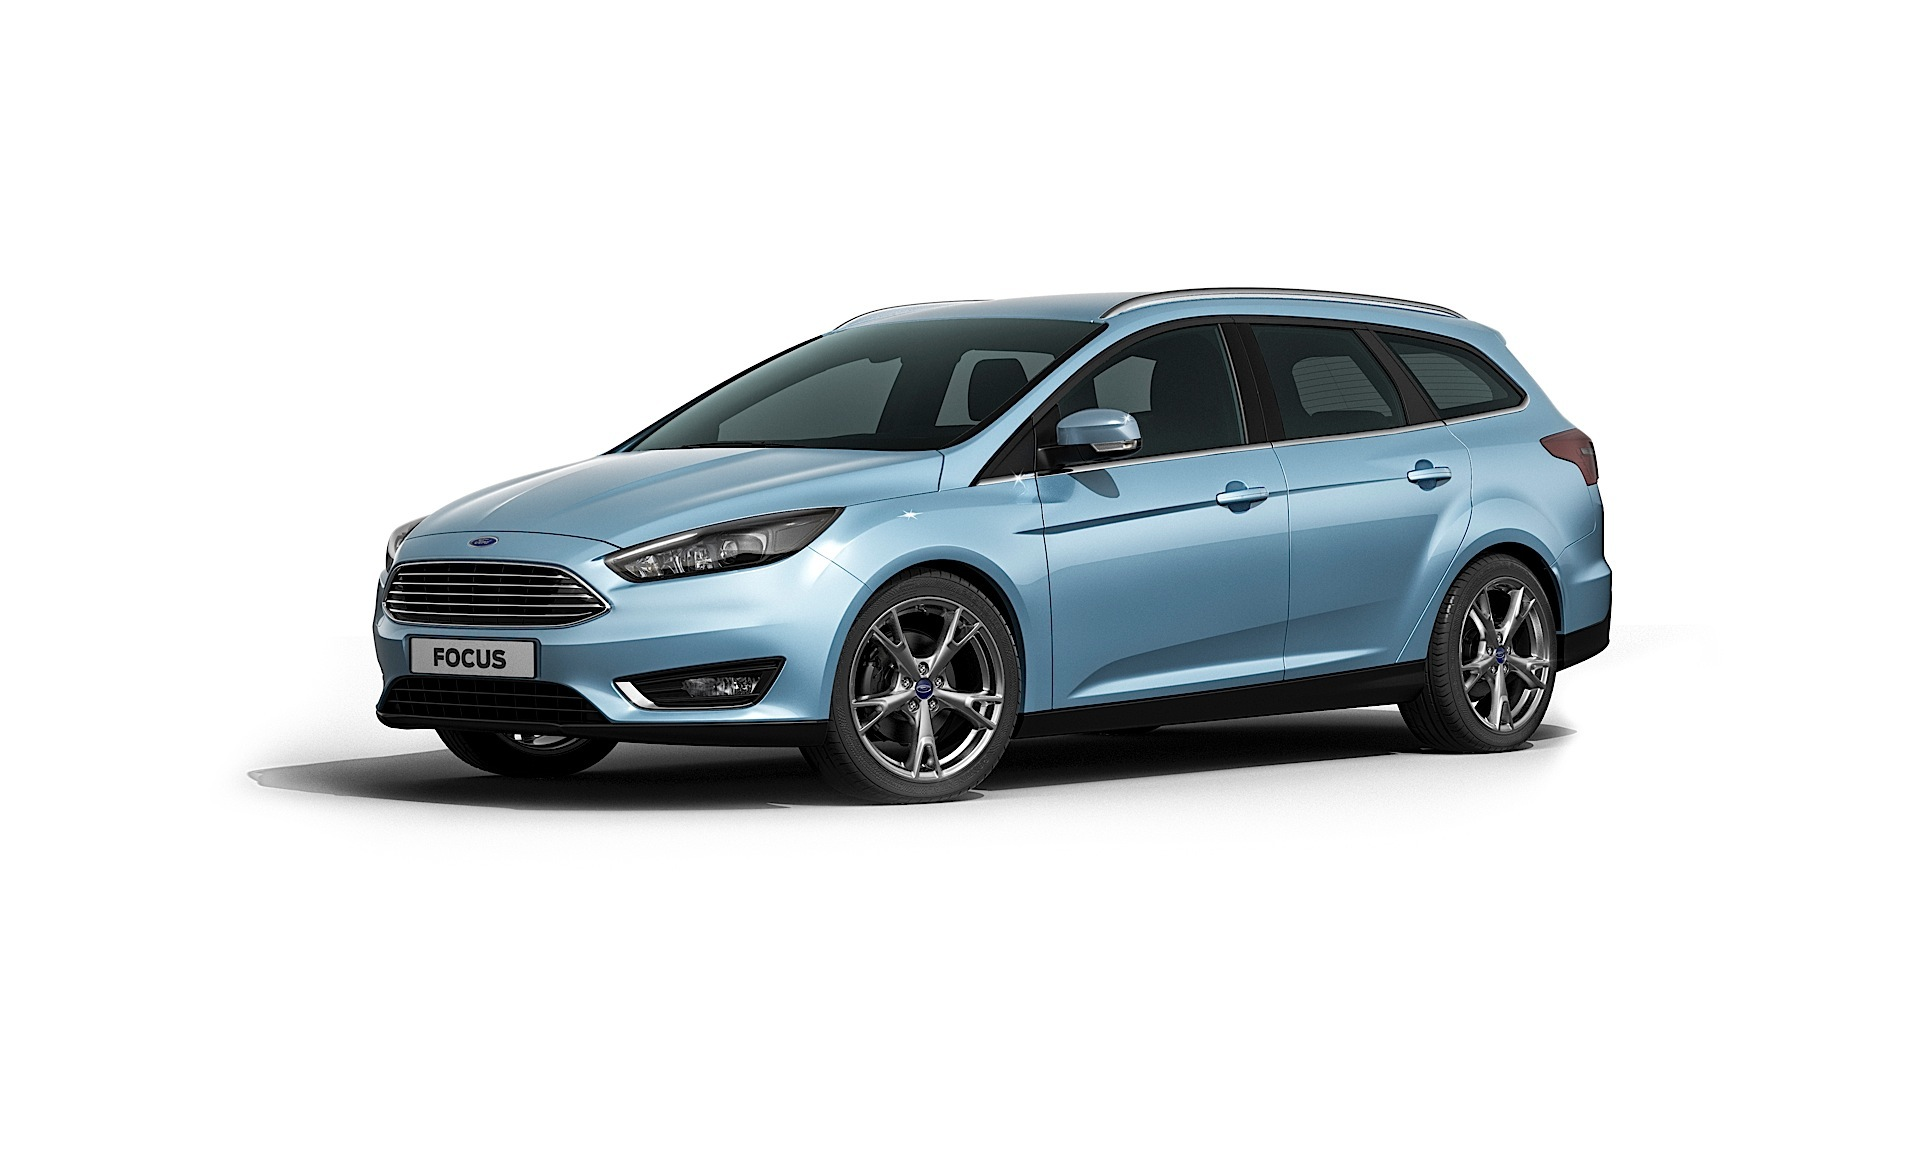 What Is Ford Mykey >> FORD Focus Estate specs - 2014, 2015, 2016, 2017, 2018 ...